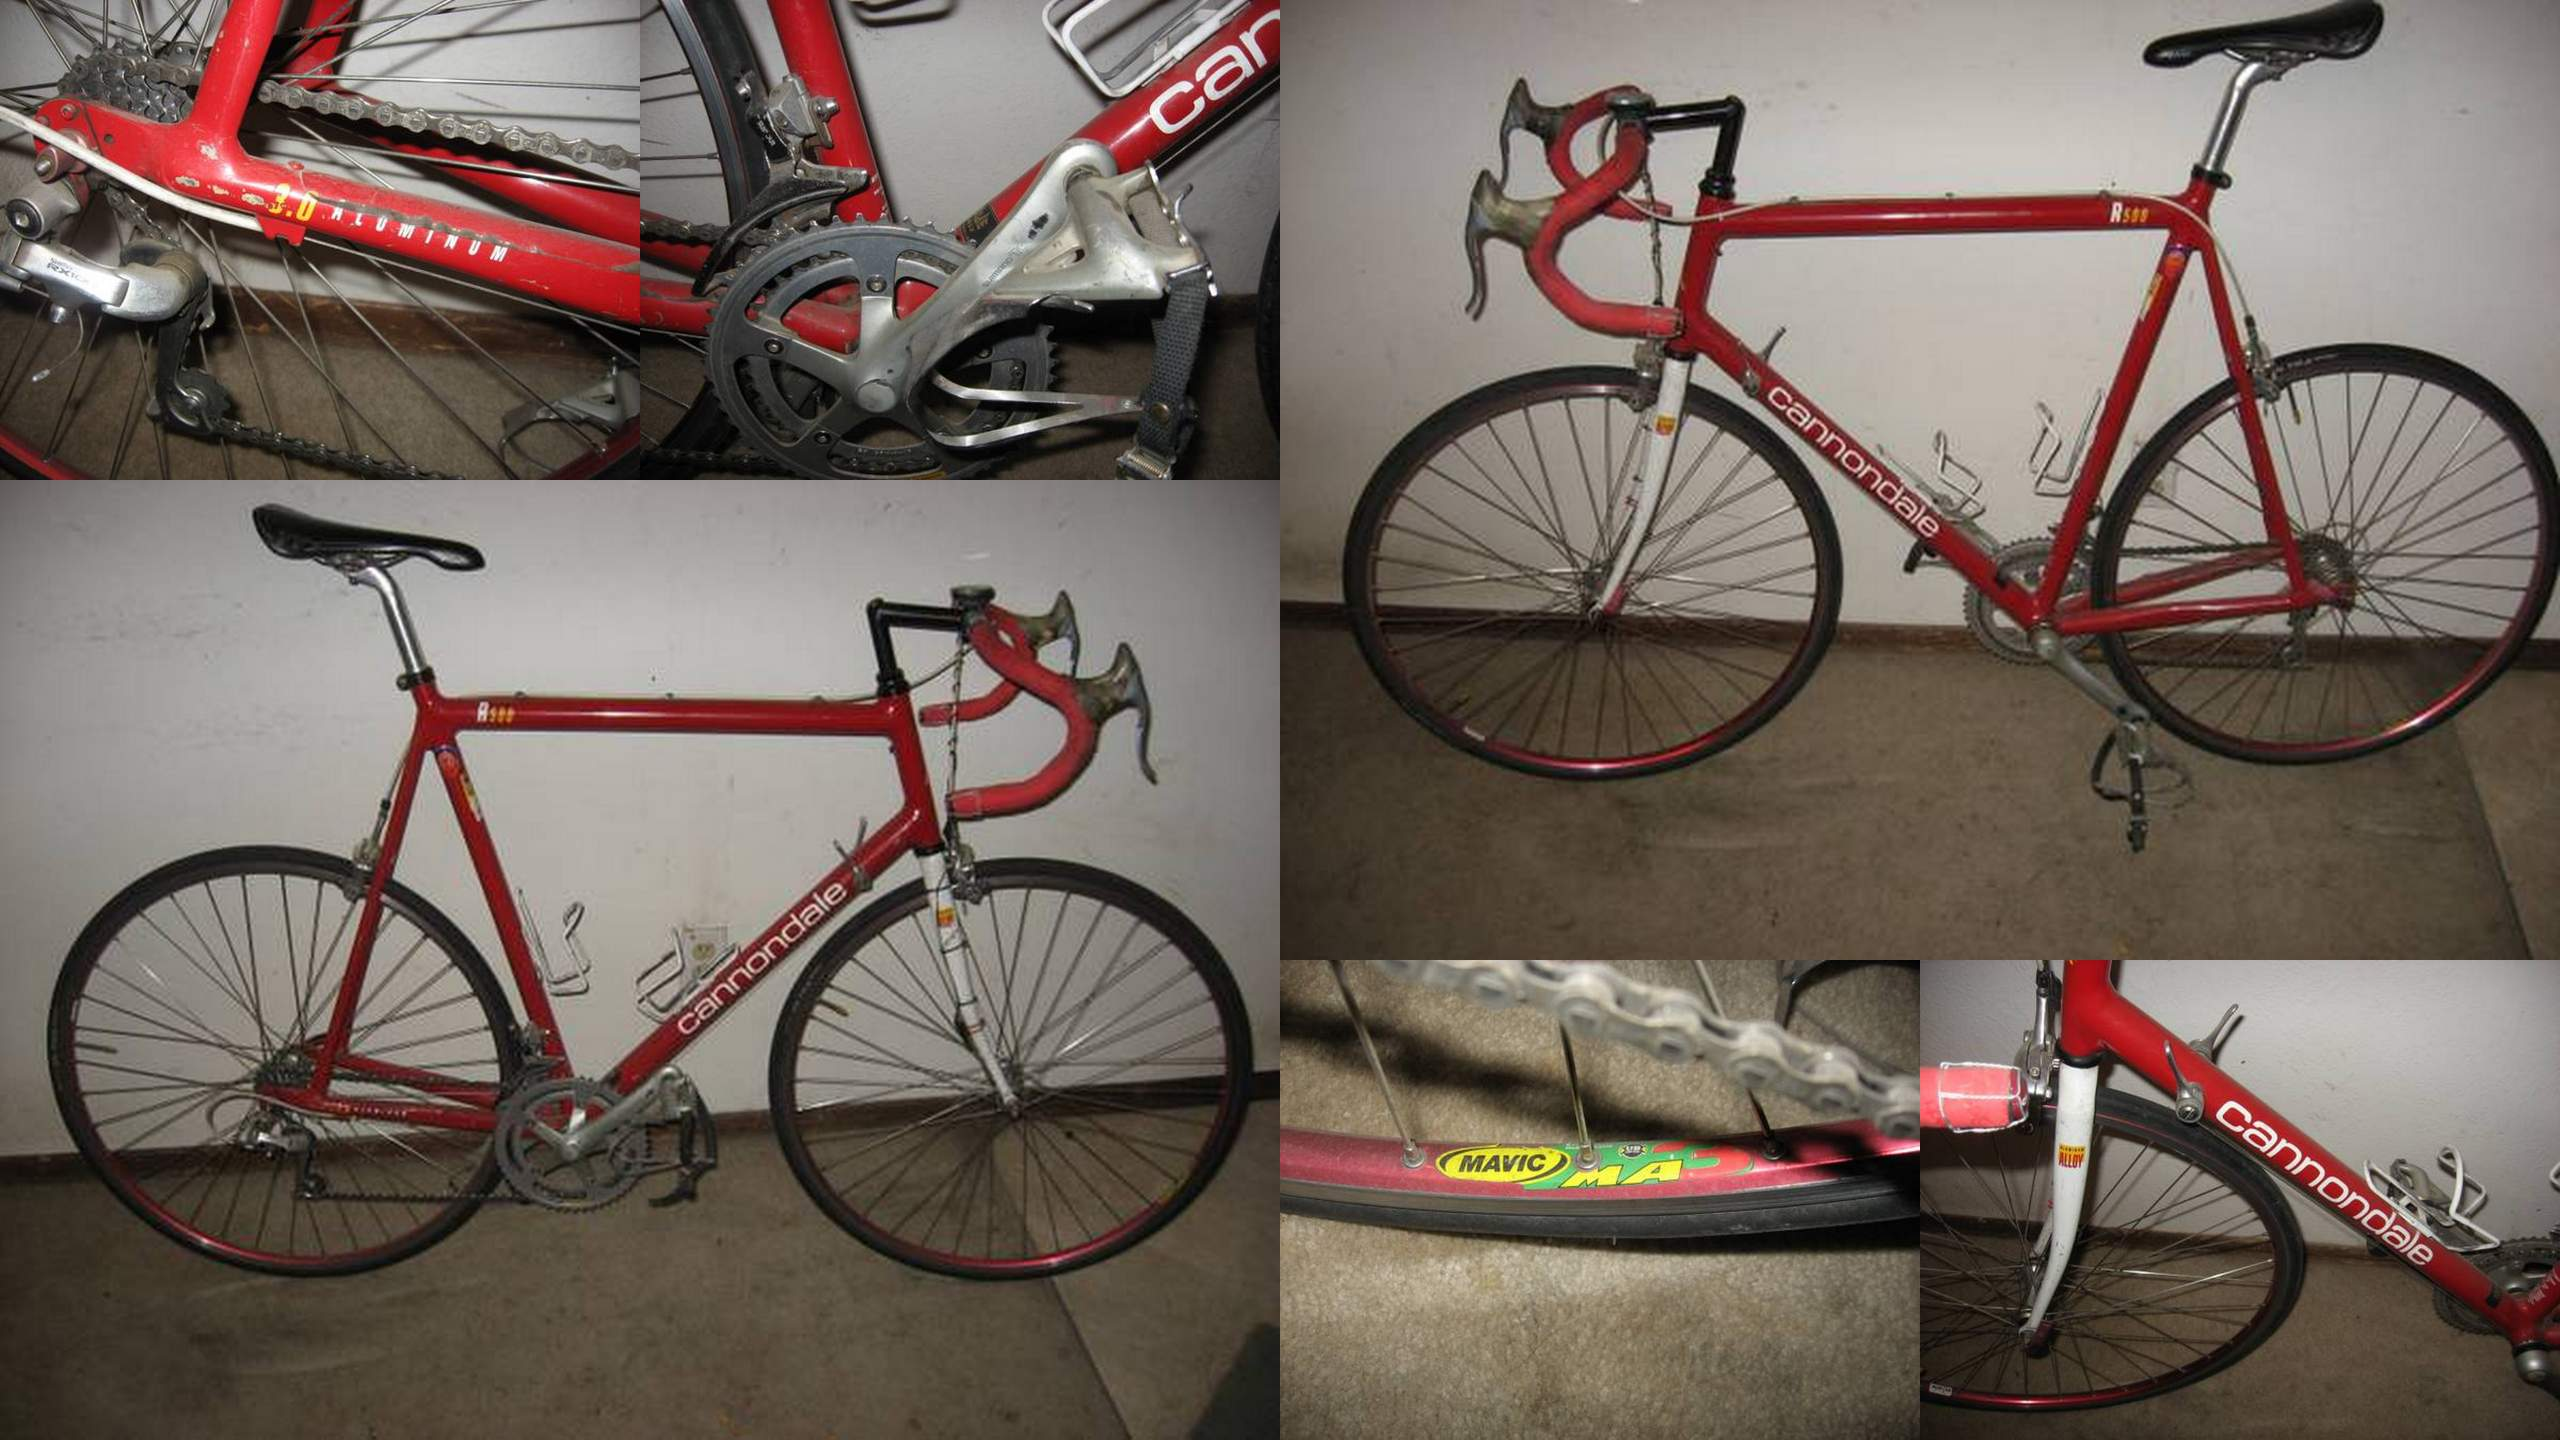 Another red and white 1992 Cannondale R500 in Fort Collins! (Photo collage made from images on Craigslist.)